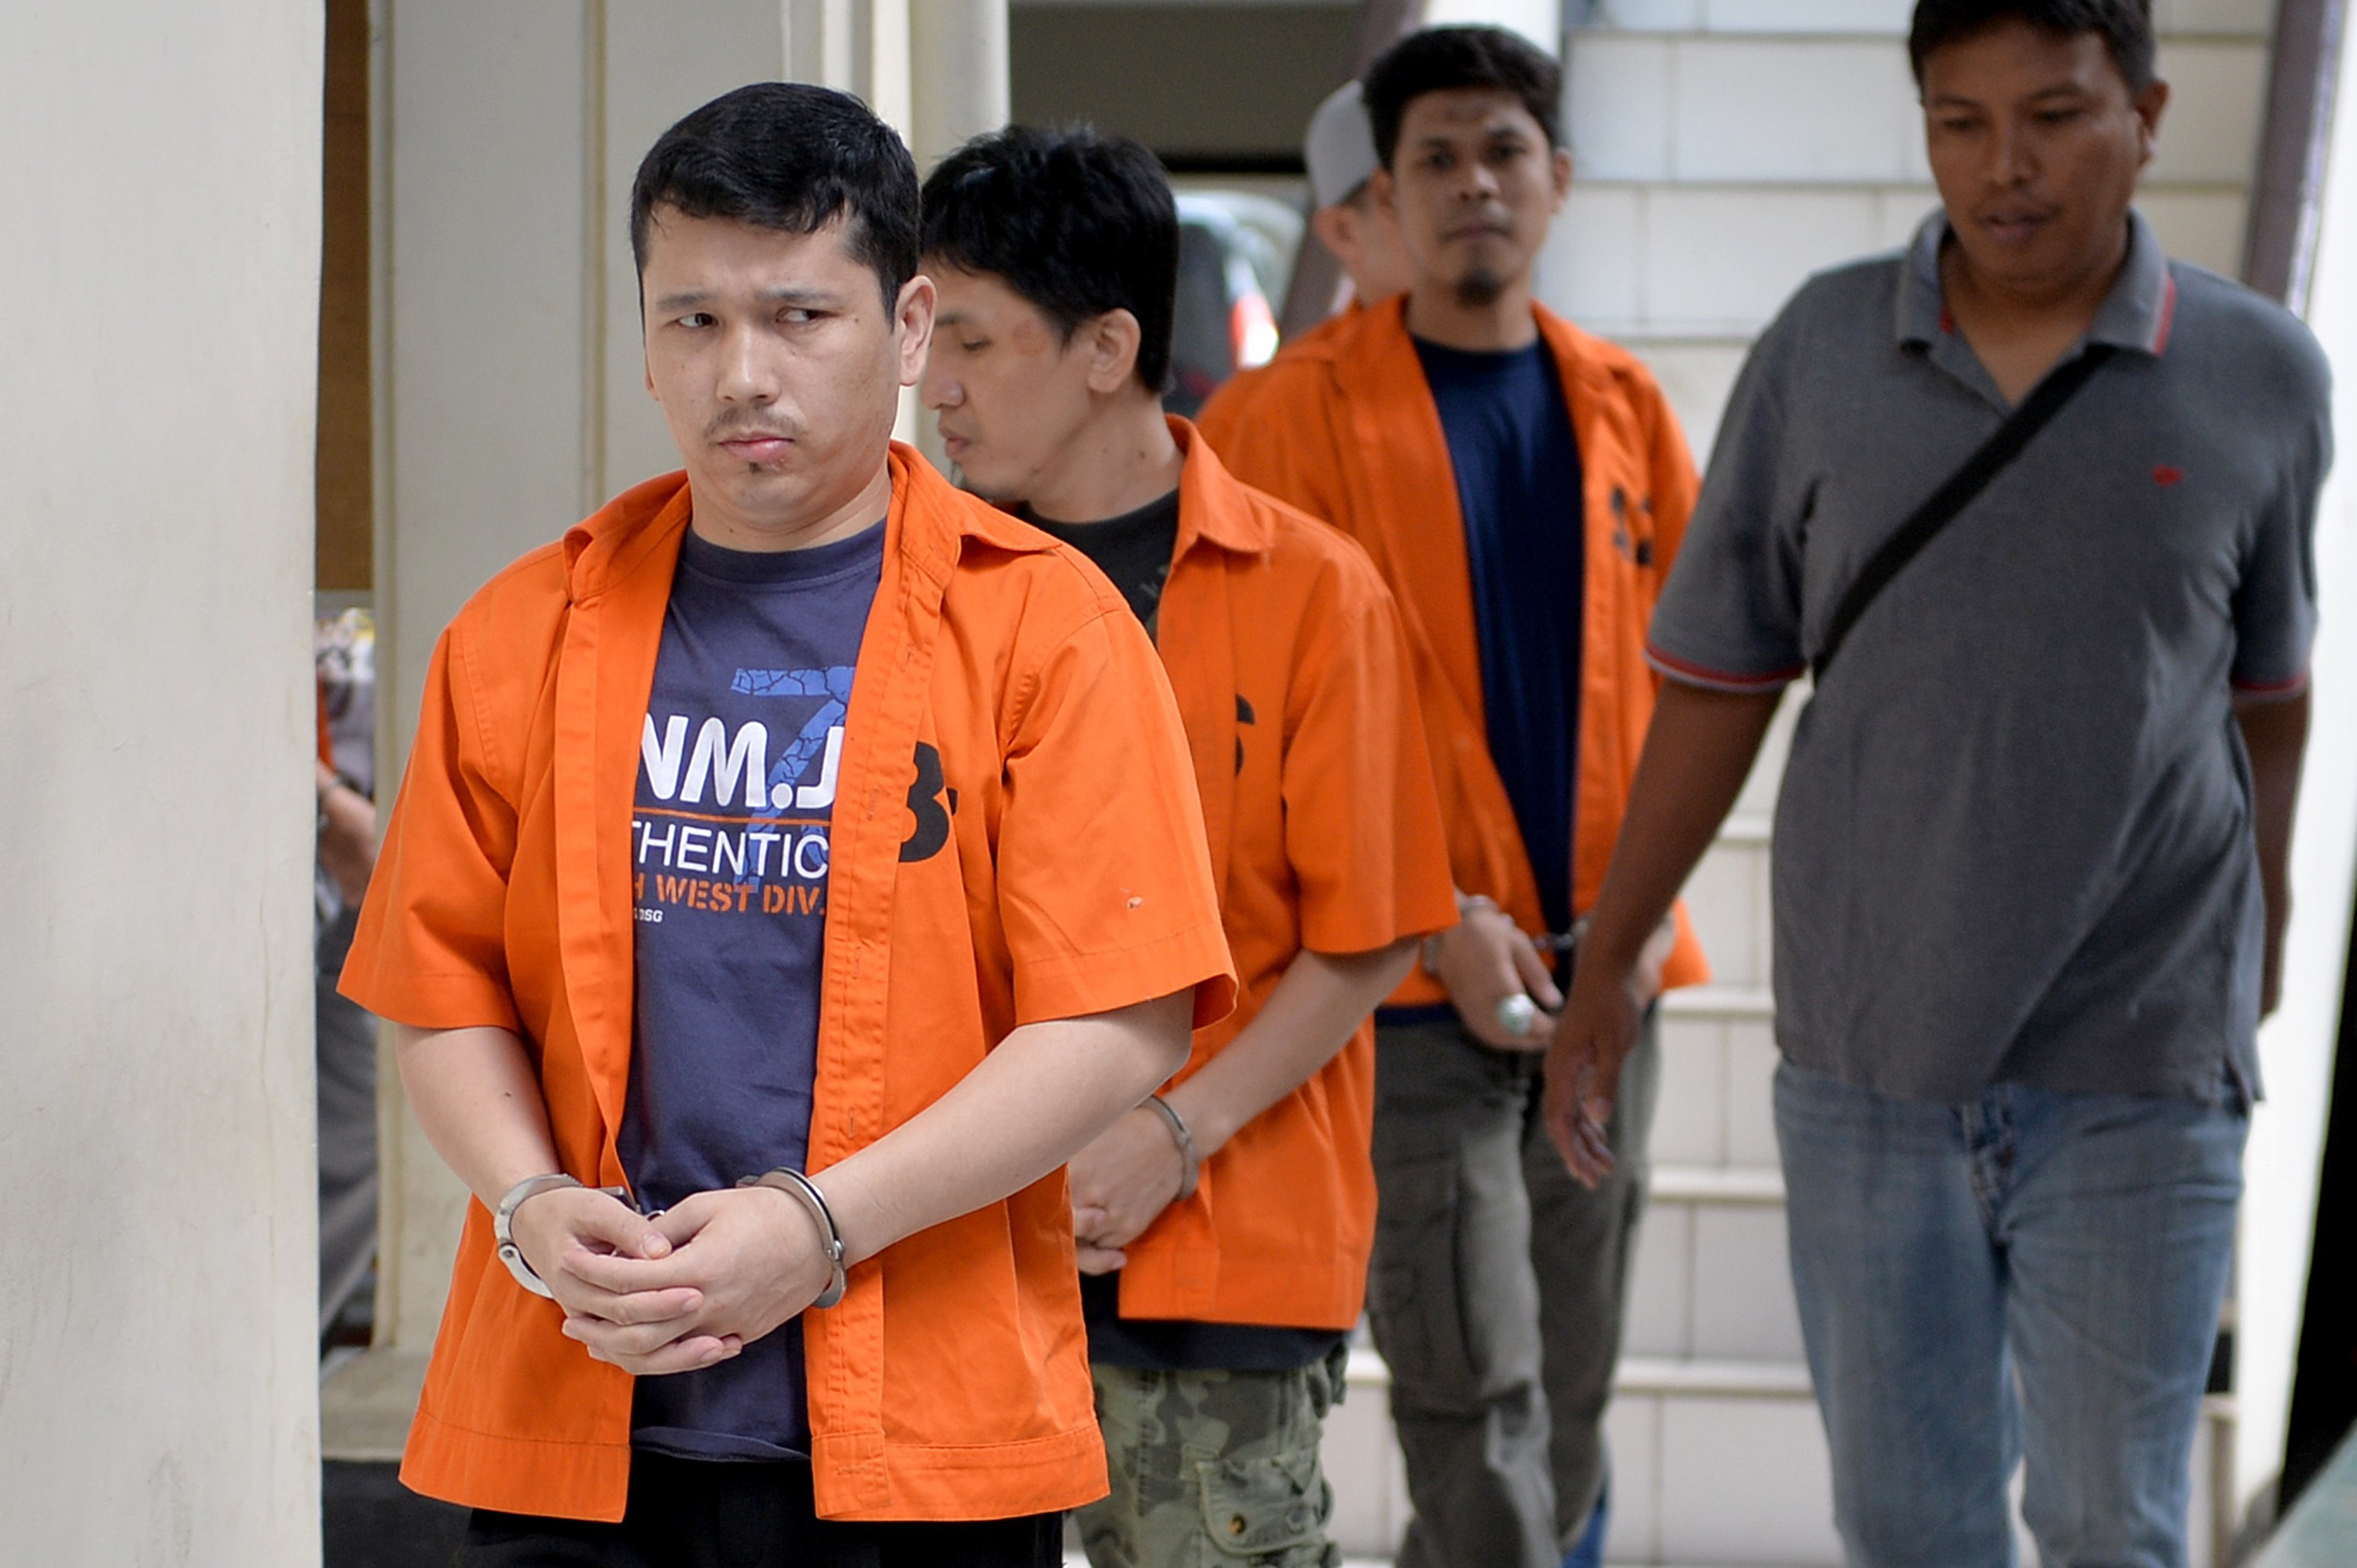 Ahmet Bozoglan, left, a member of China's Uighur minority, walks for his appearance at the North Jakarta District Court on terrorism charges on July 29, 2015, in Jakarta